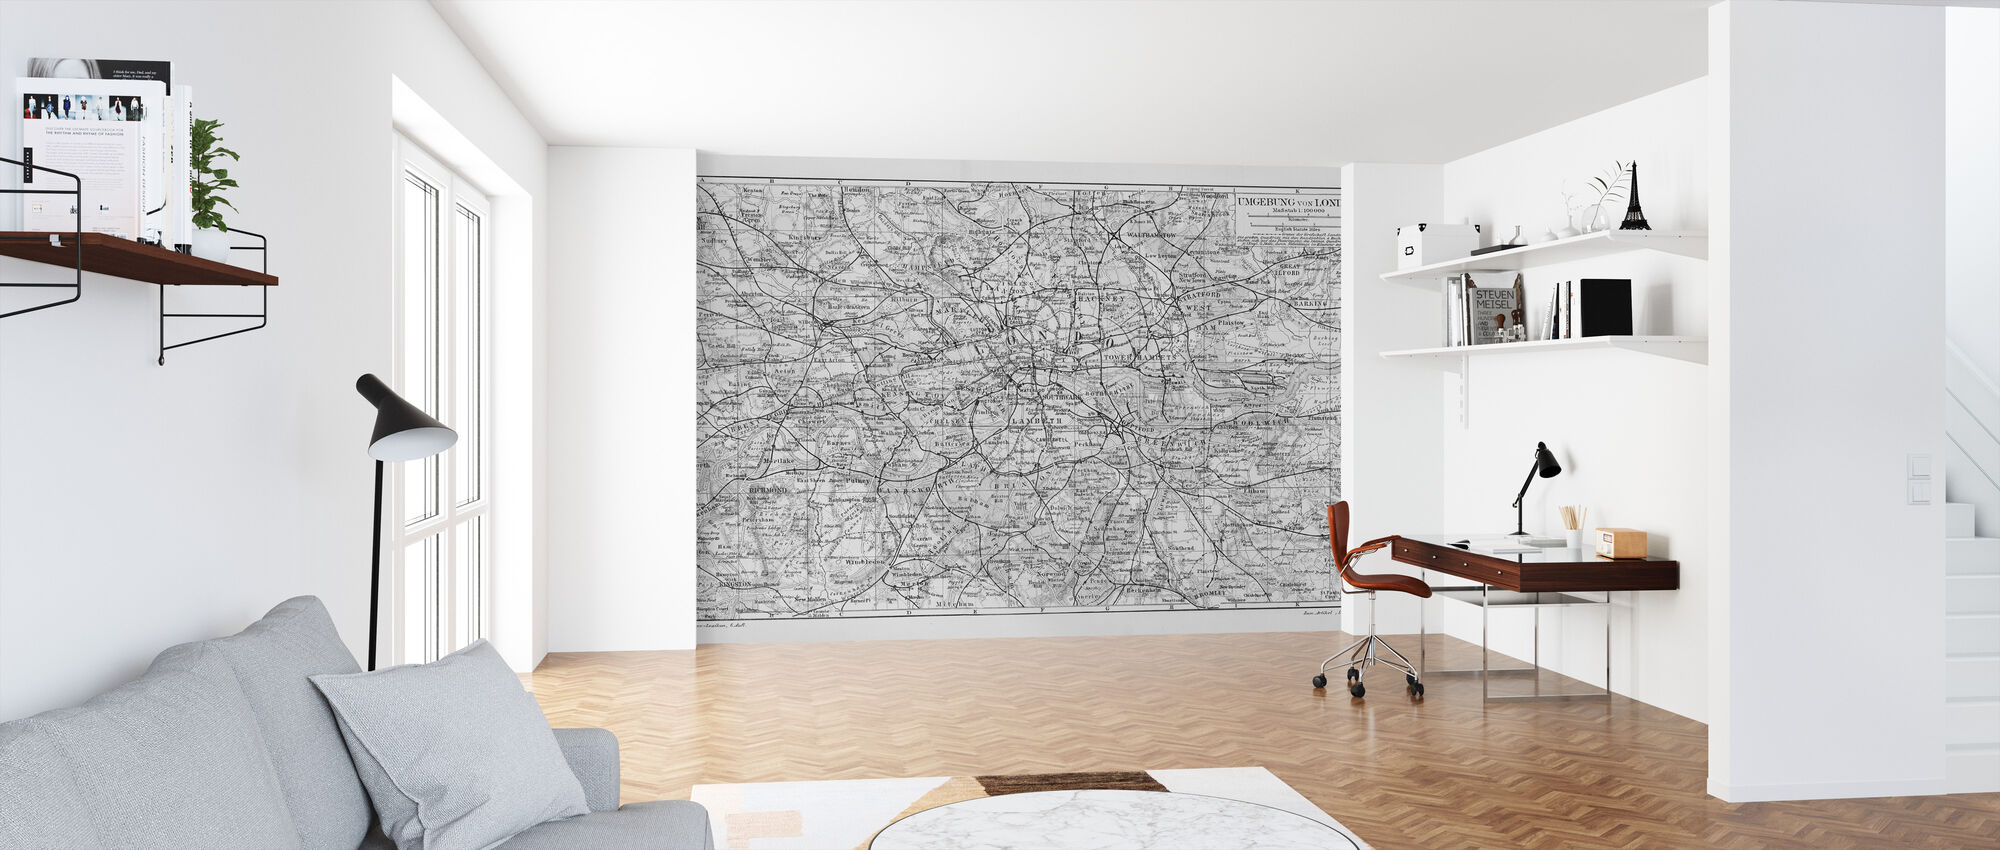 London Map Gray - Wallpaper - Office